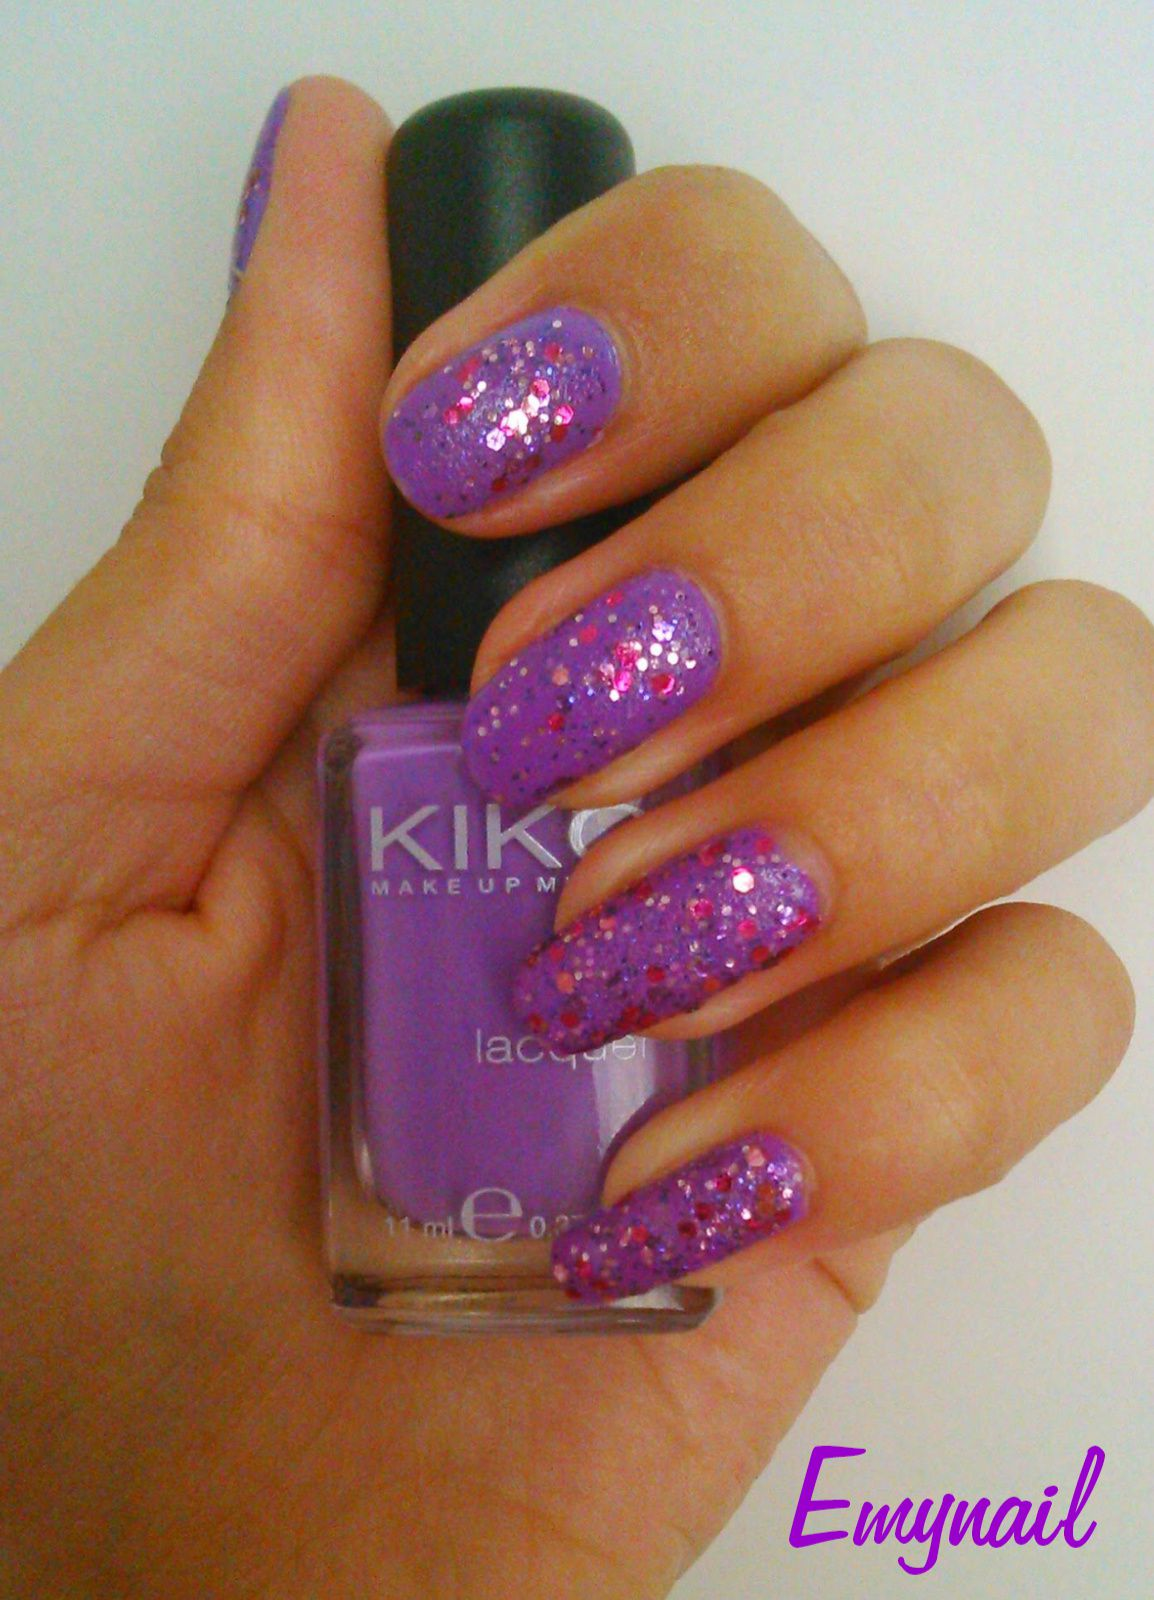 "Association du vernis : Kiko n°331 & OPI ""Blush Hour"""